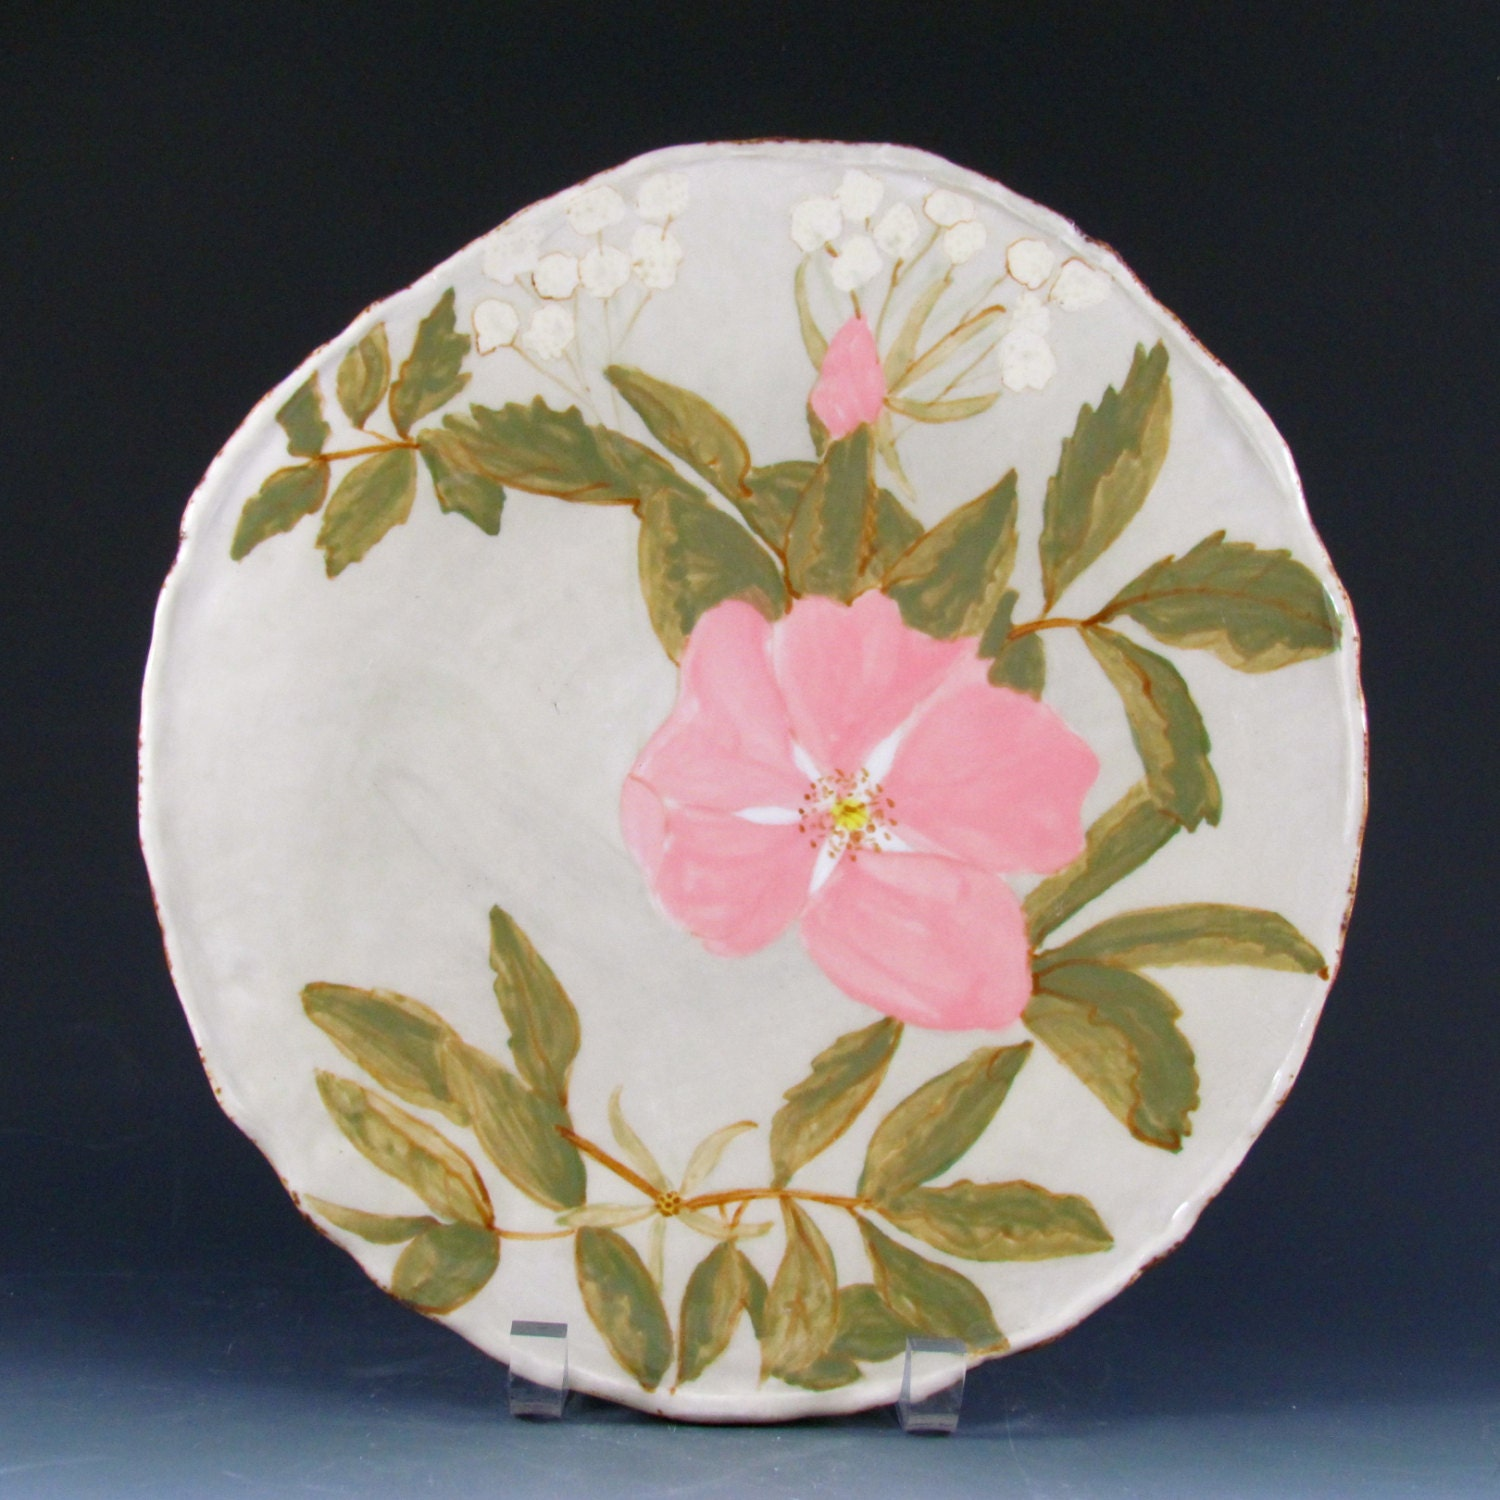 Large serving plate with wild roses